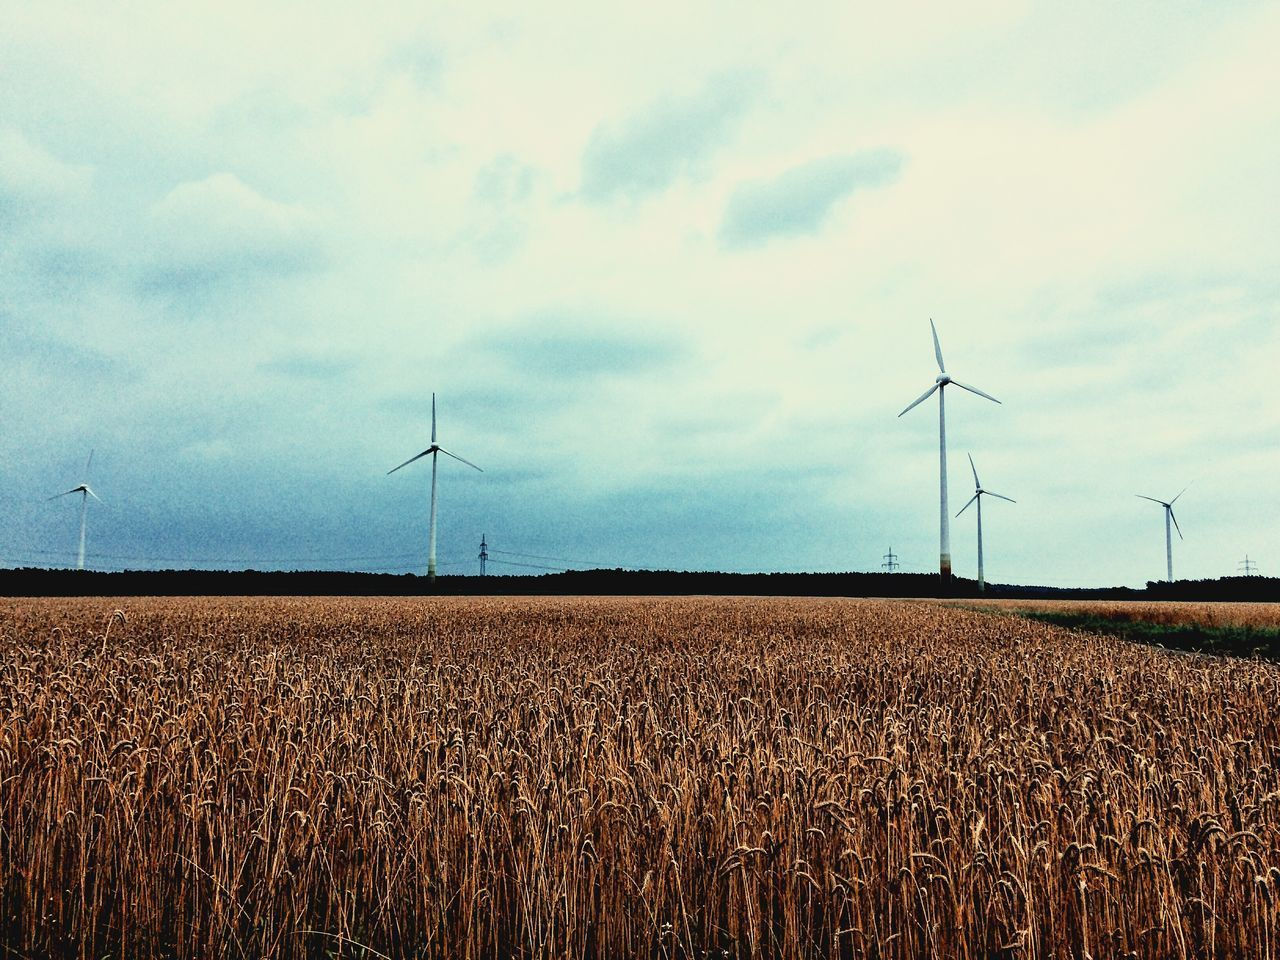 wind turbine, wind power, environmental conservation, alternative energy, fuel and power generation, field, renewable energy, windmill, rural scene, sky, day, agriculture, industrial windmill, no people, outdoors, nature, landscape, tranquility, technology, beauty in nature